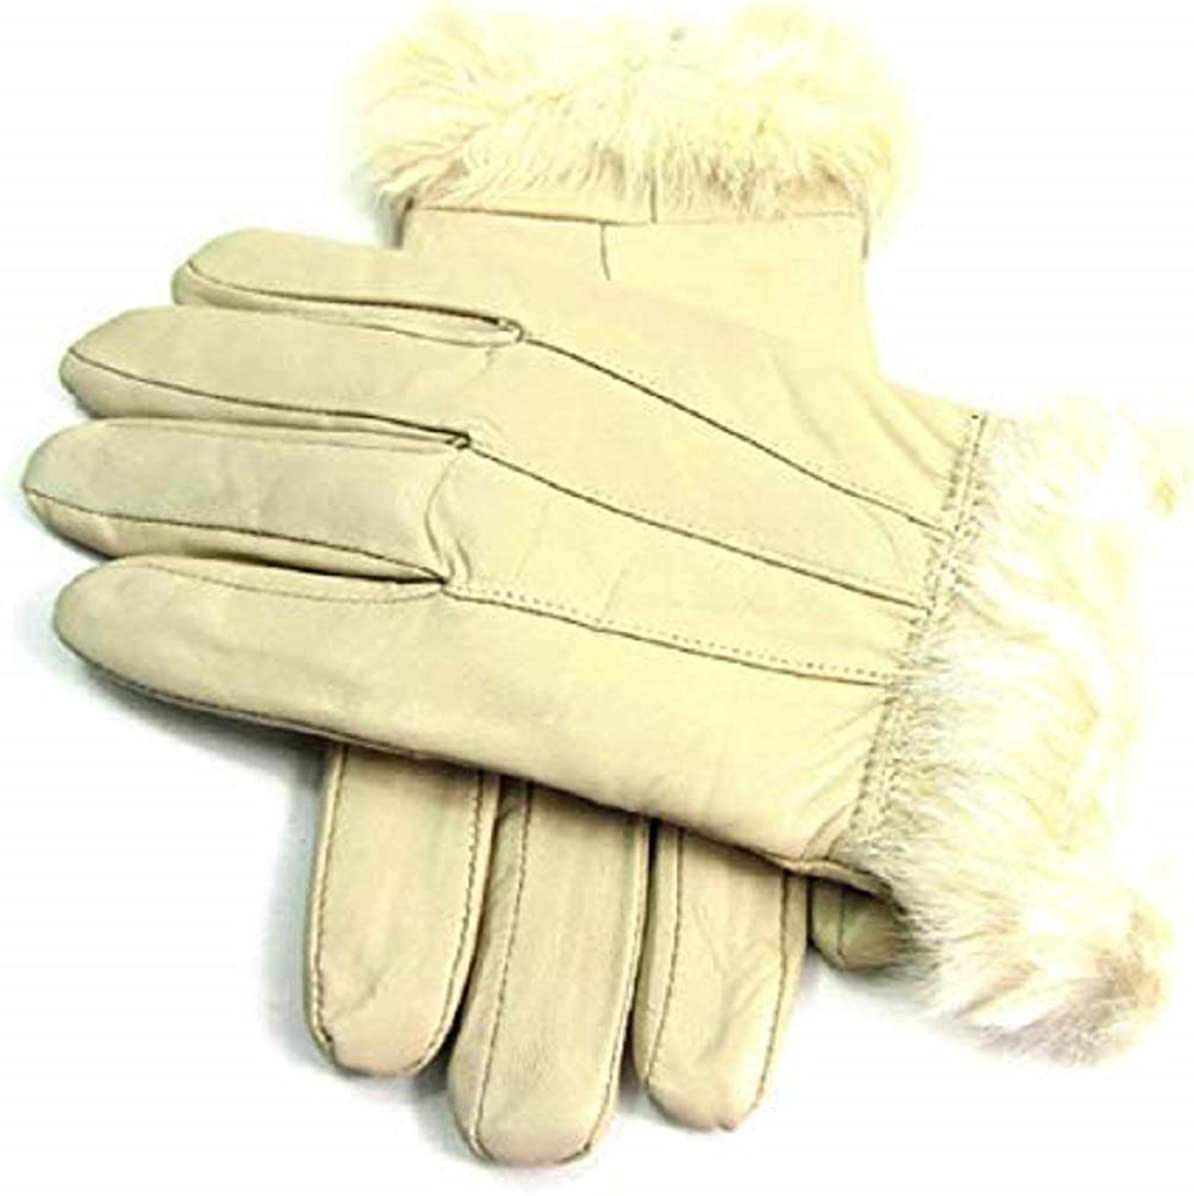 LADIES FUR TRIMMED REAL LEATHER FULLY LINED GLOVES IN LIGHT BEIGE